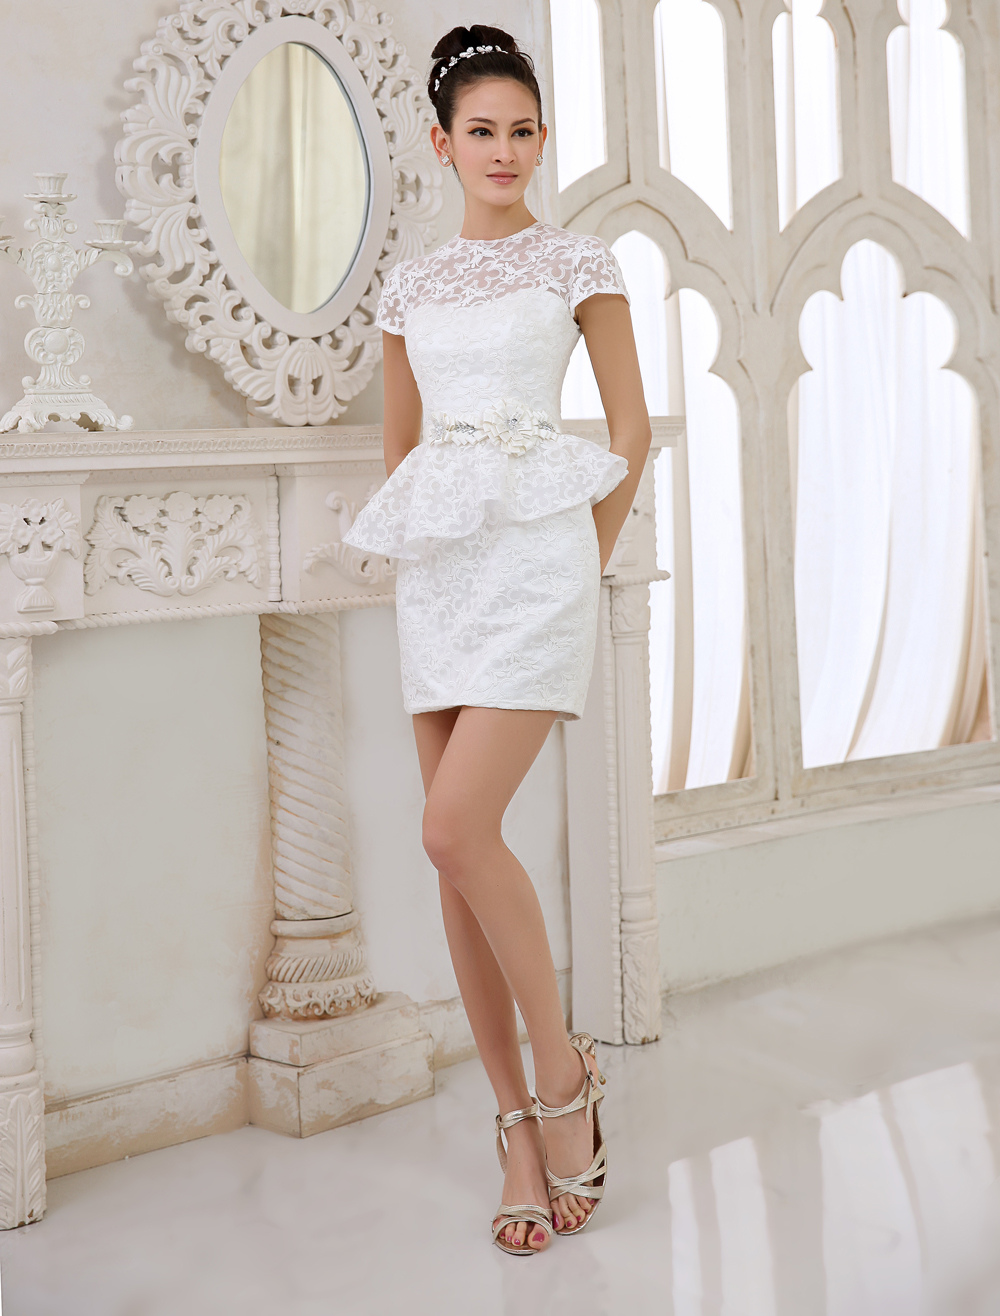 Short wedding dresses in color - Ivory Bridal People Short Wedding Dress With Jewel Neck Sheath Milanoo Milanoo Com